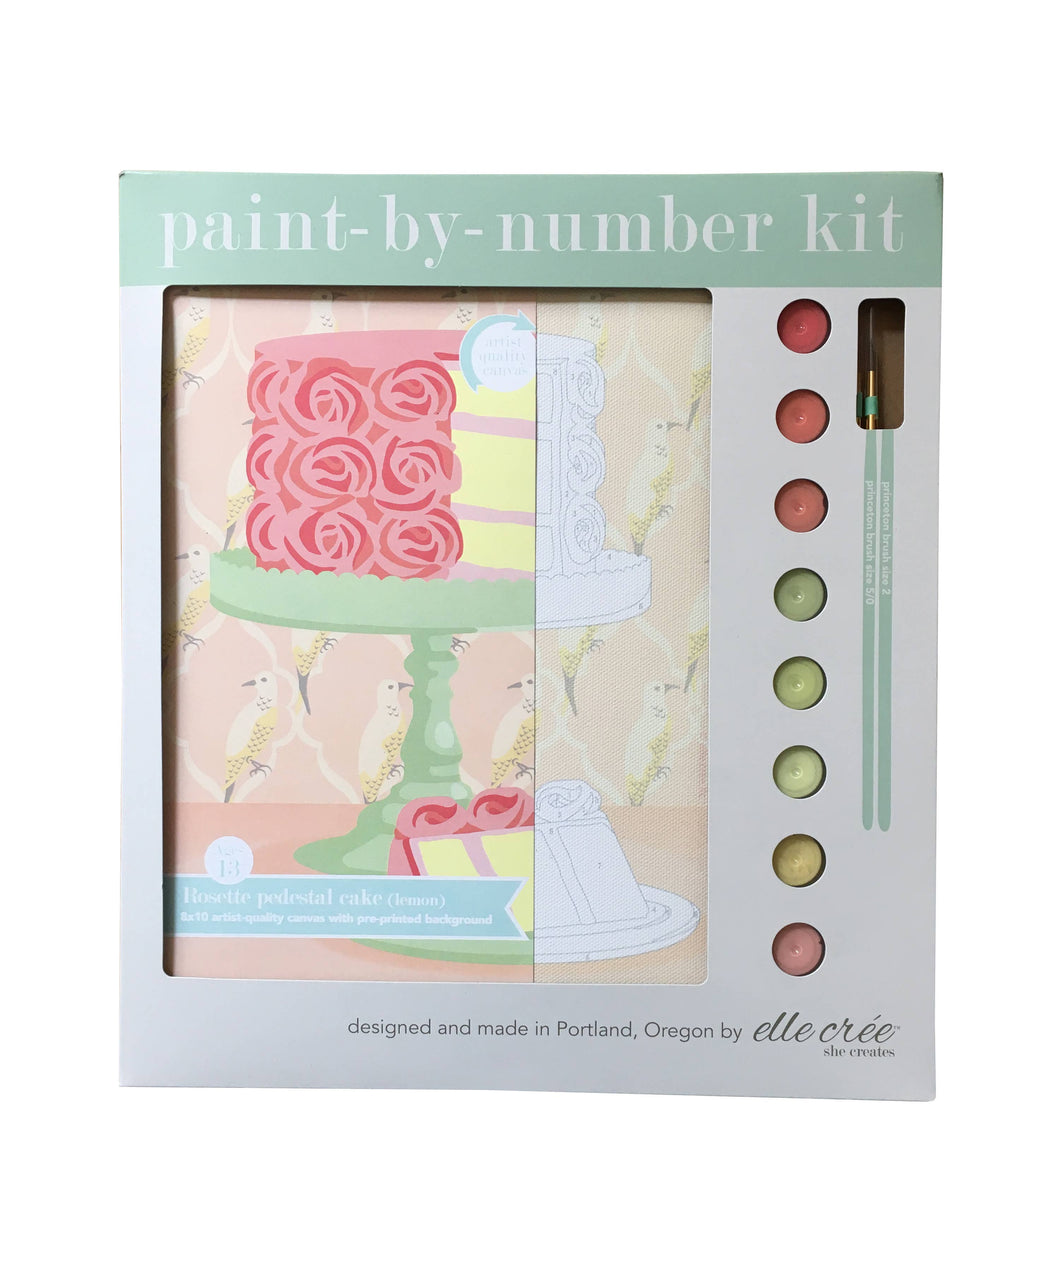 Rosette Pedestal Cake Paint-by-Number